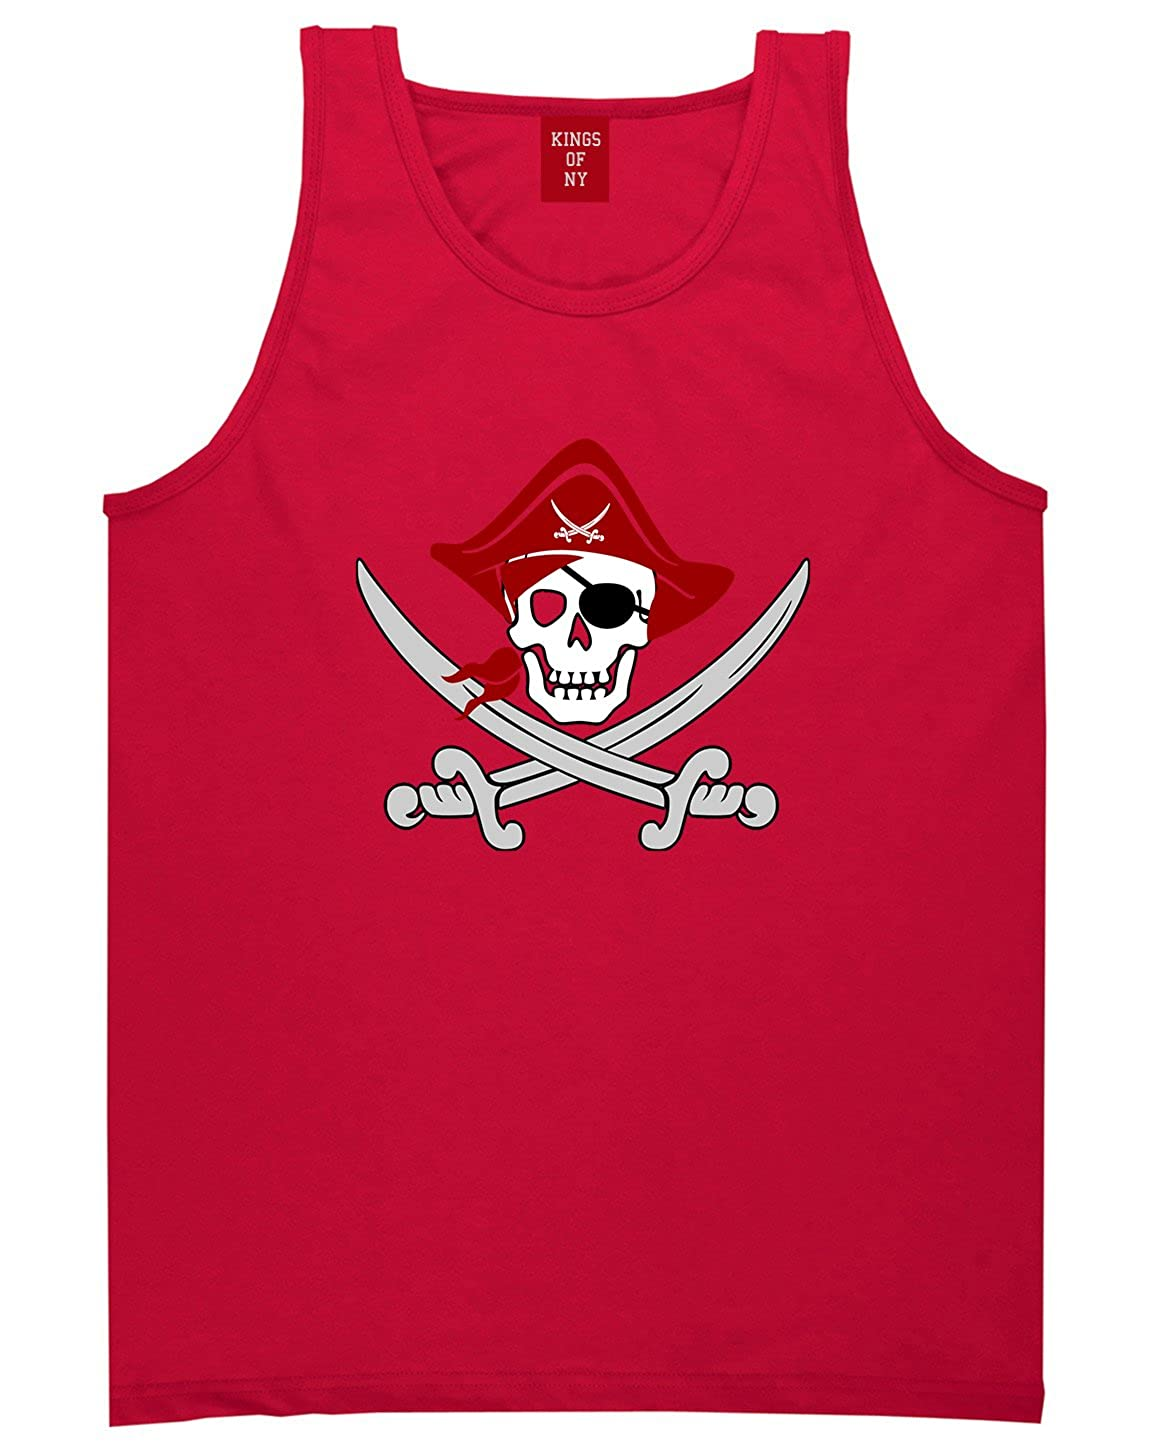 Kings Of NY Pirate Captain and Swords Mens Tank Top Shirt